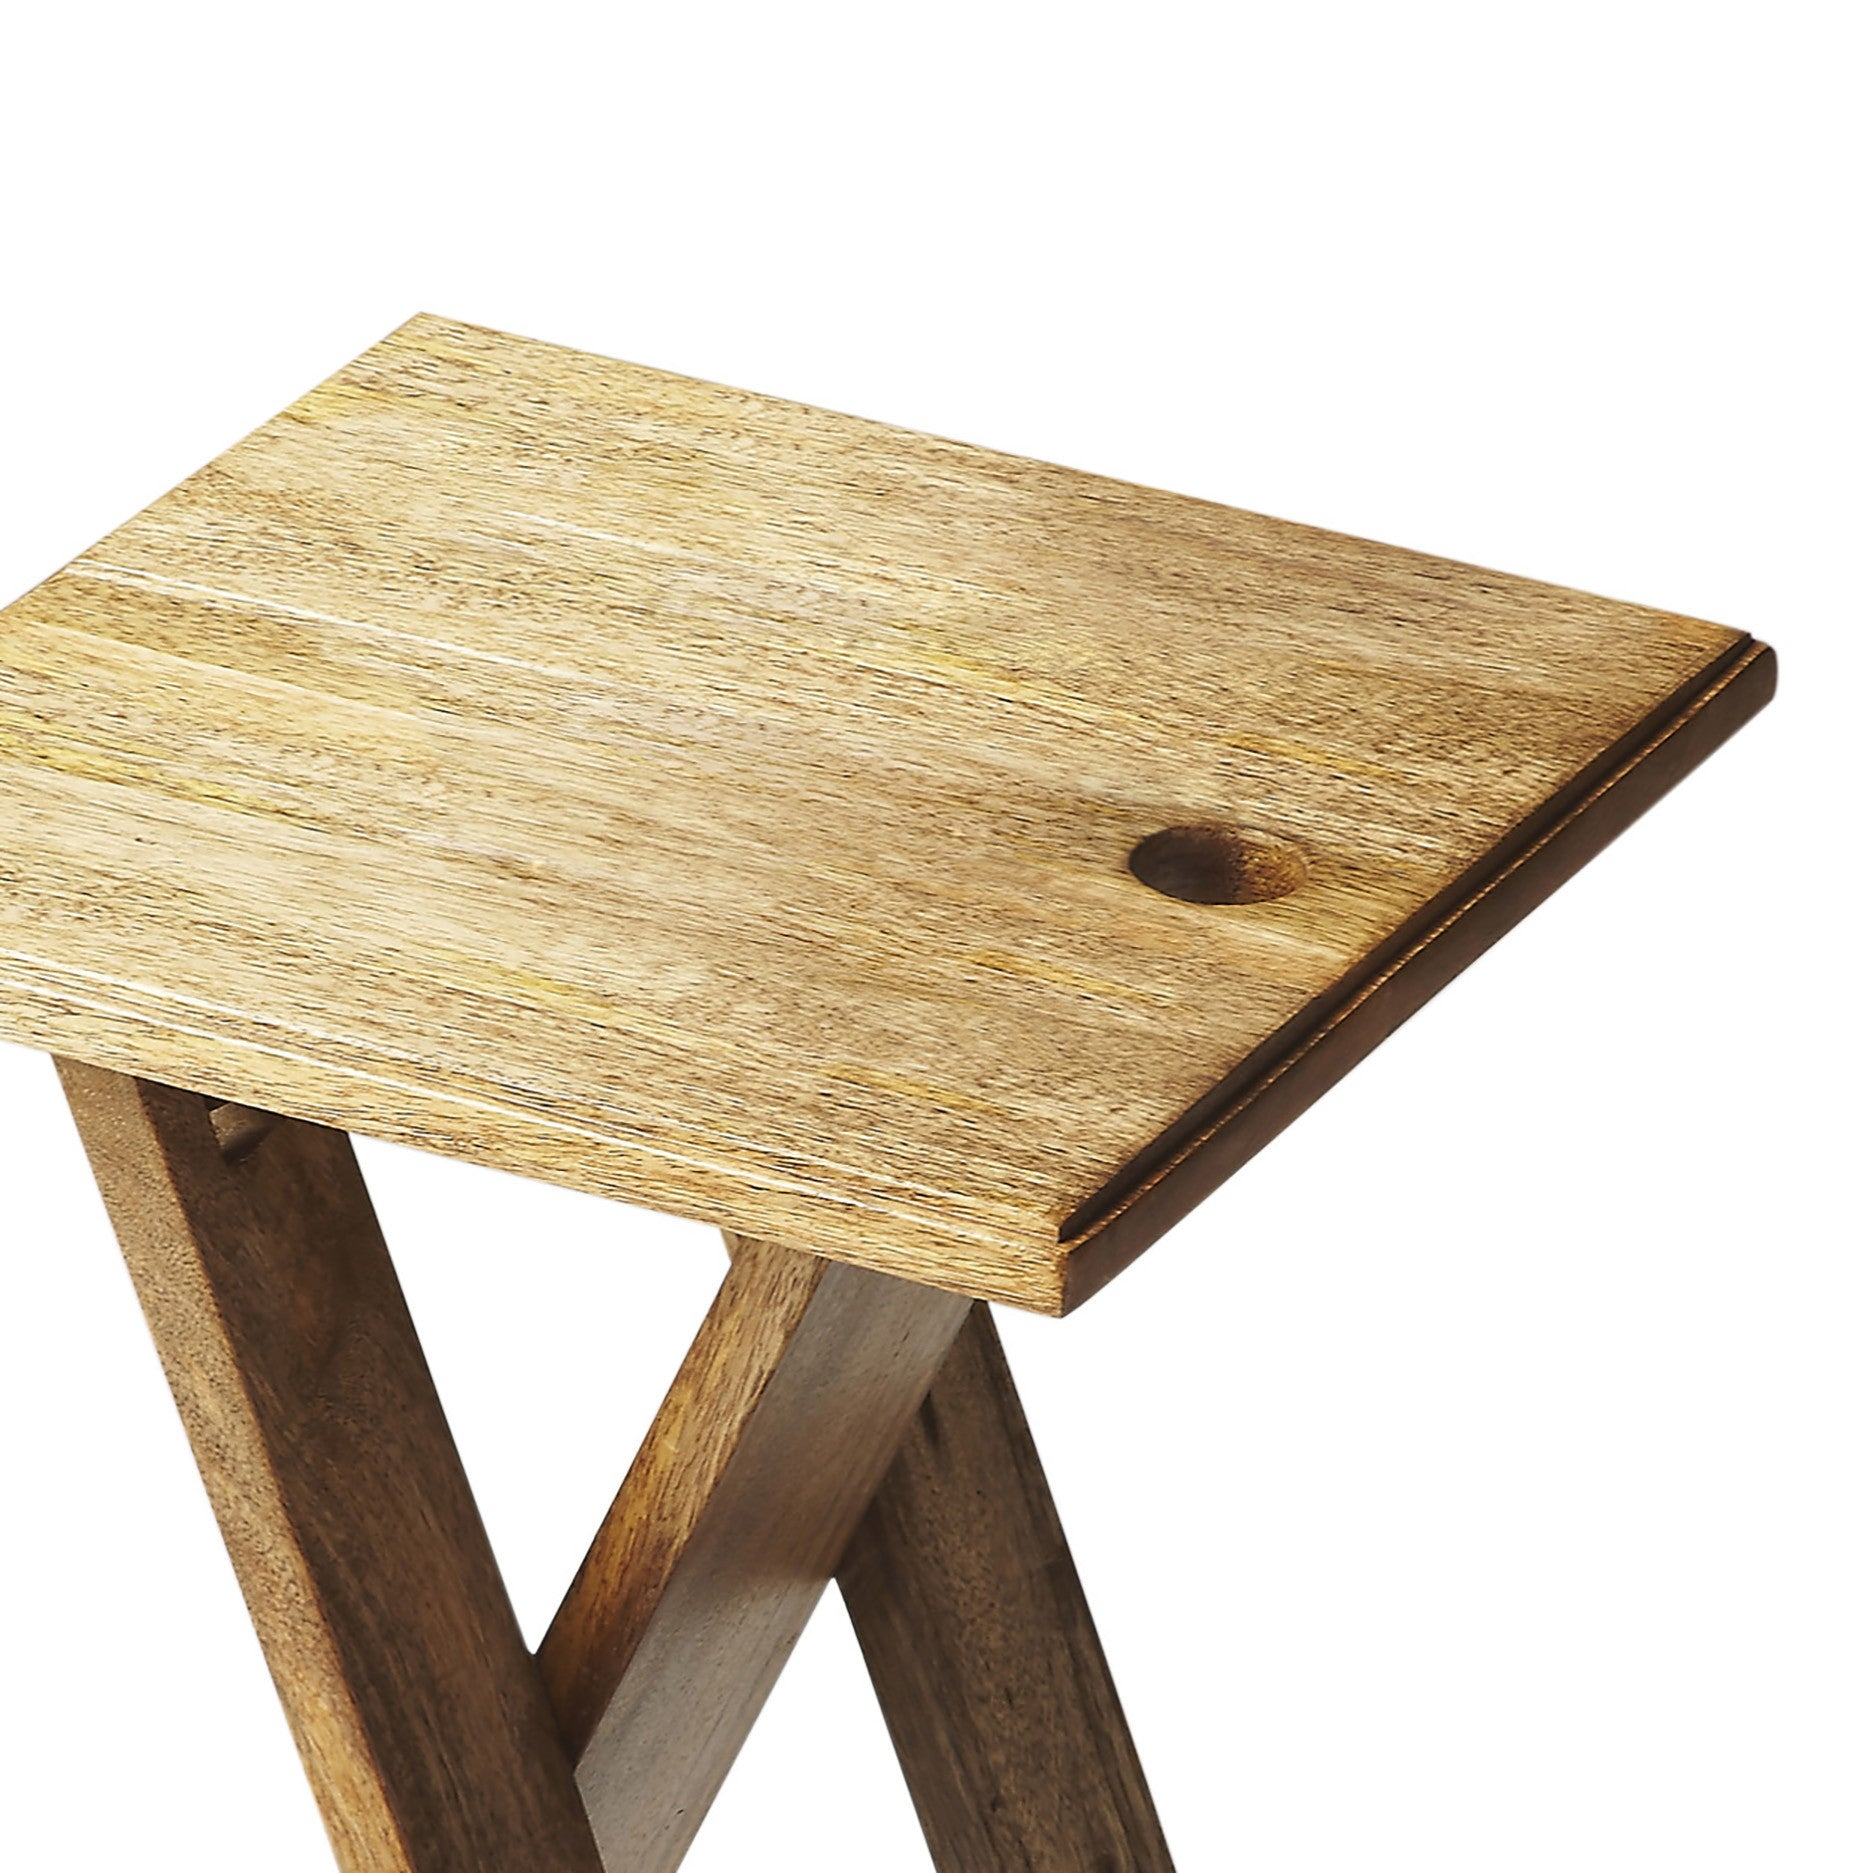 Small Natural Wood Folding Table